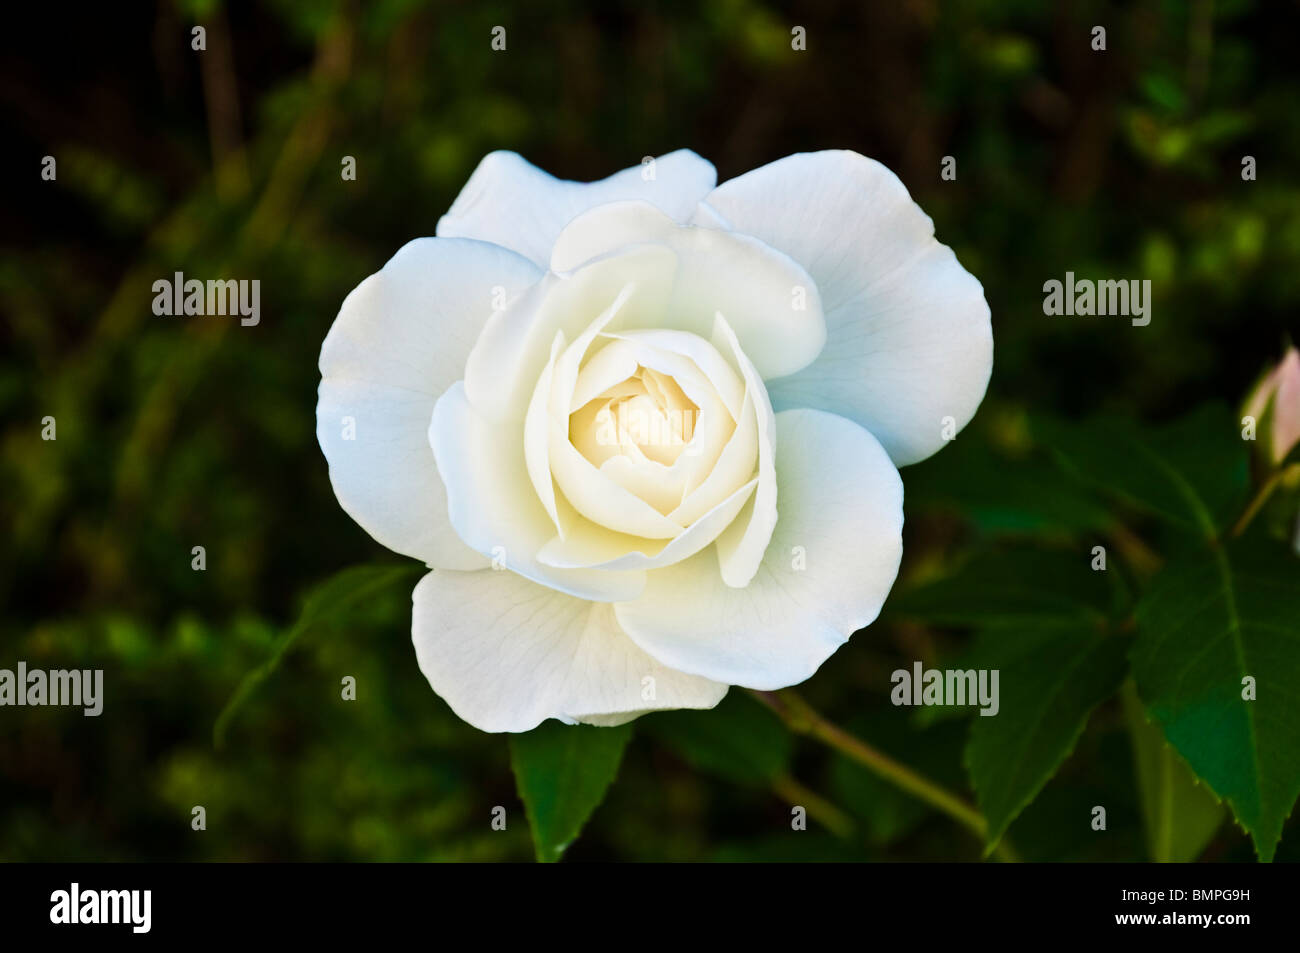 Iceberg Rose / Rosa - a pure and perfect snow-white softly scented rose growing in an English country garden. - Stock Image